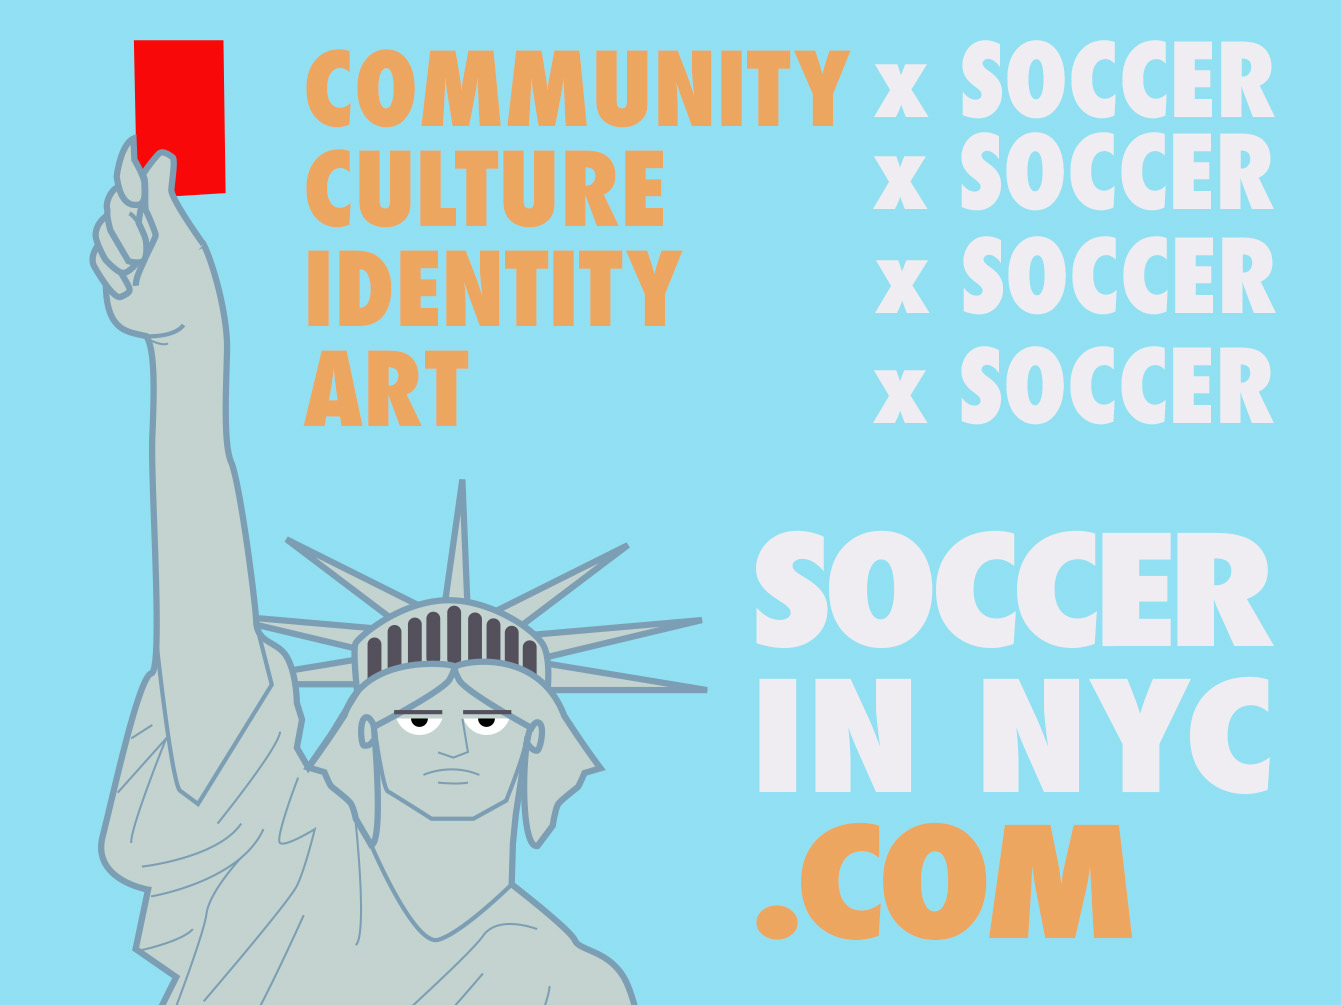 soccer in nyc logo.jpg